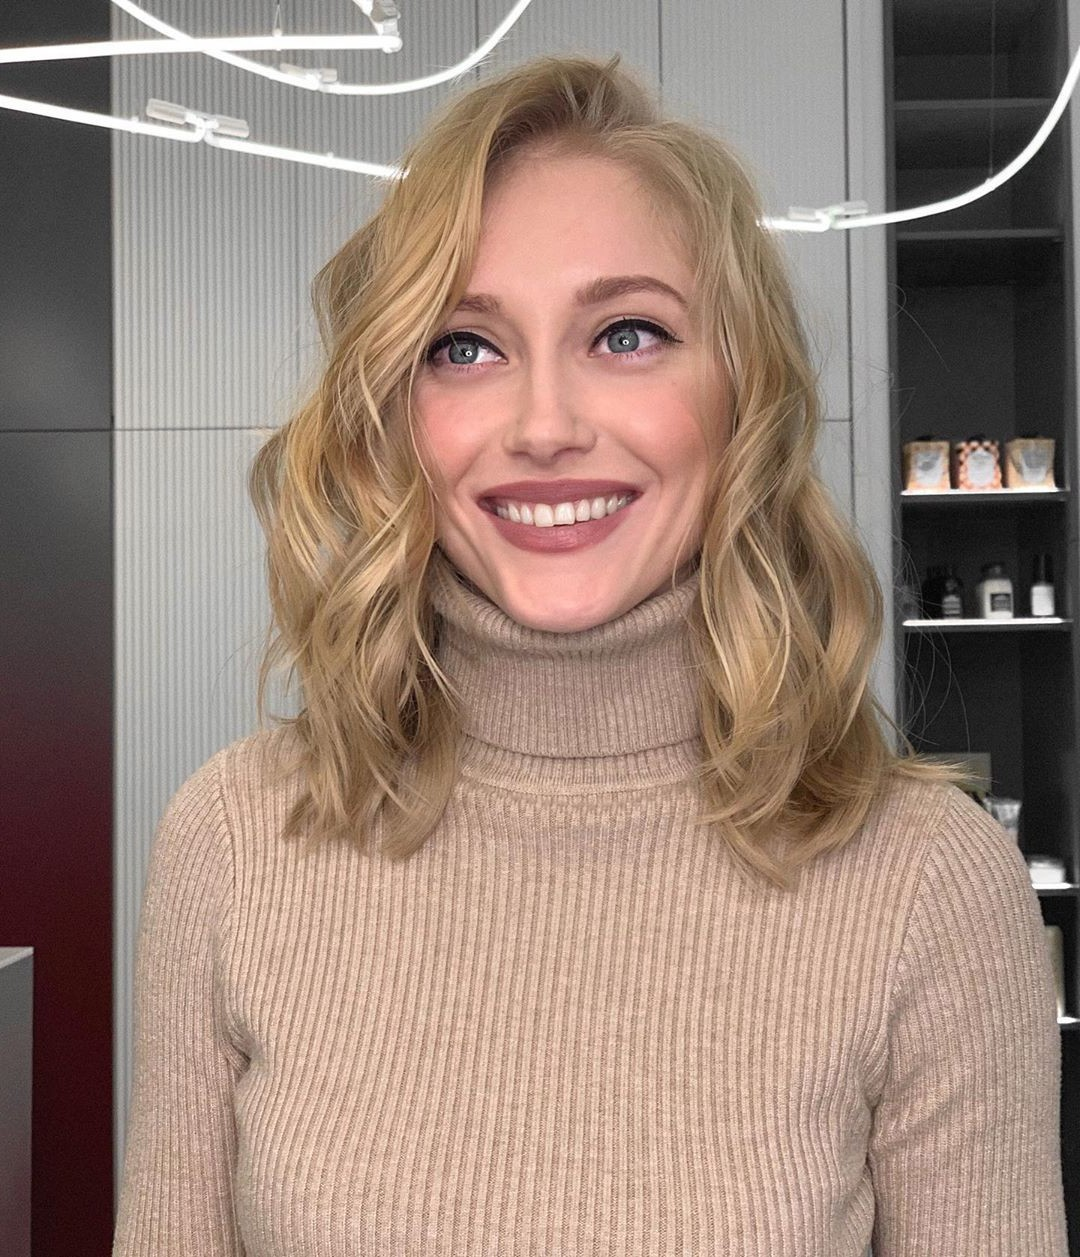 Shoulder-Length Wavy Hairstyle for Any Occasion